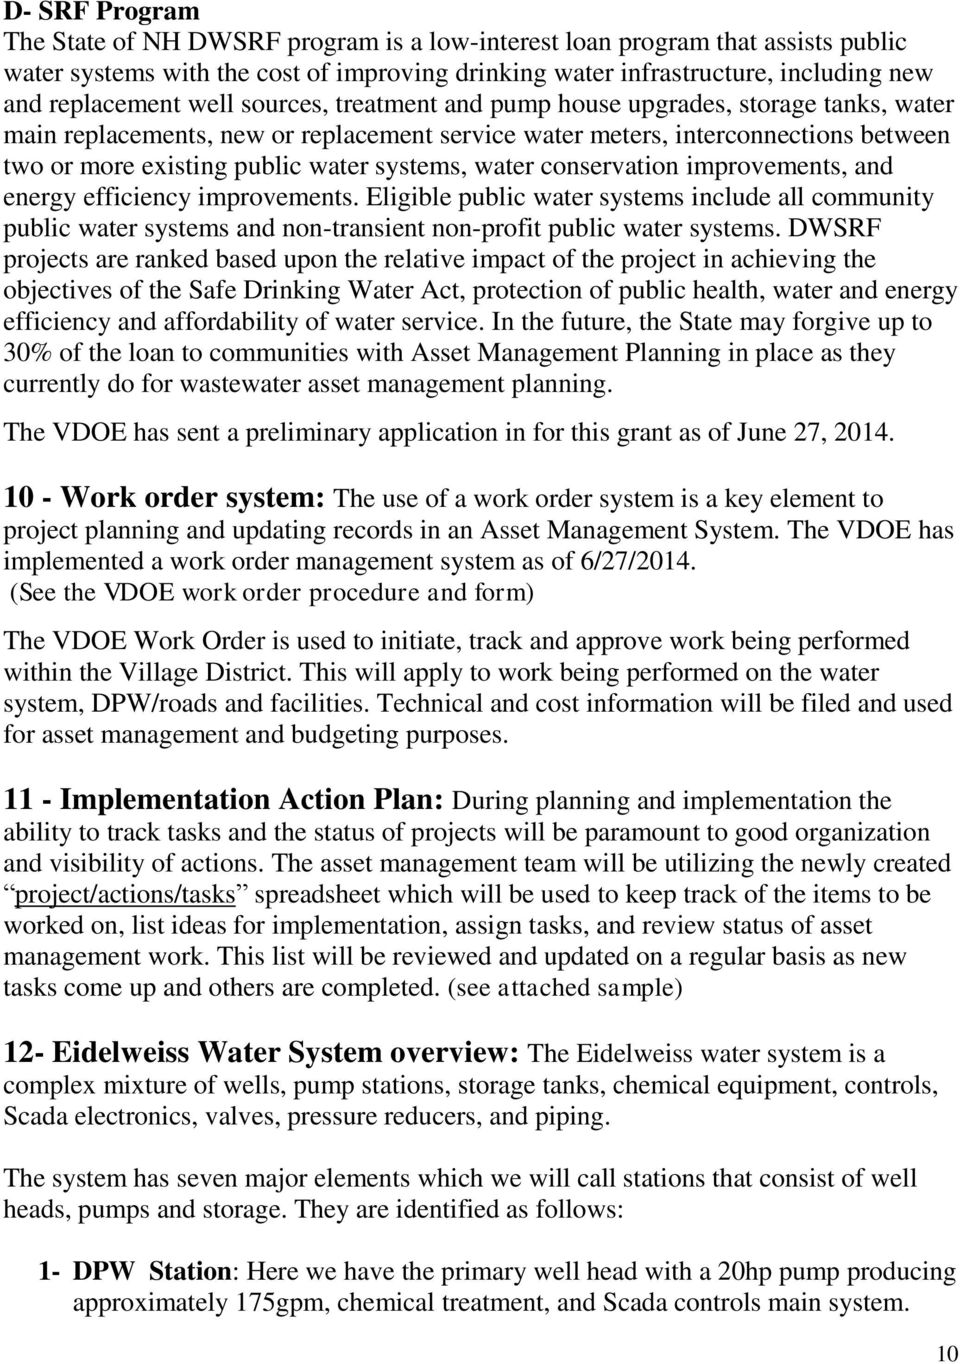 water conservation improvements, and energy efficiency improvements. Eligible public water systems include all community public water systems and non-transient non-profit public water systems.